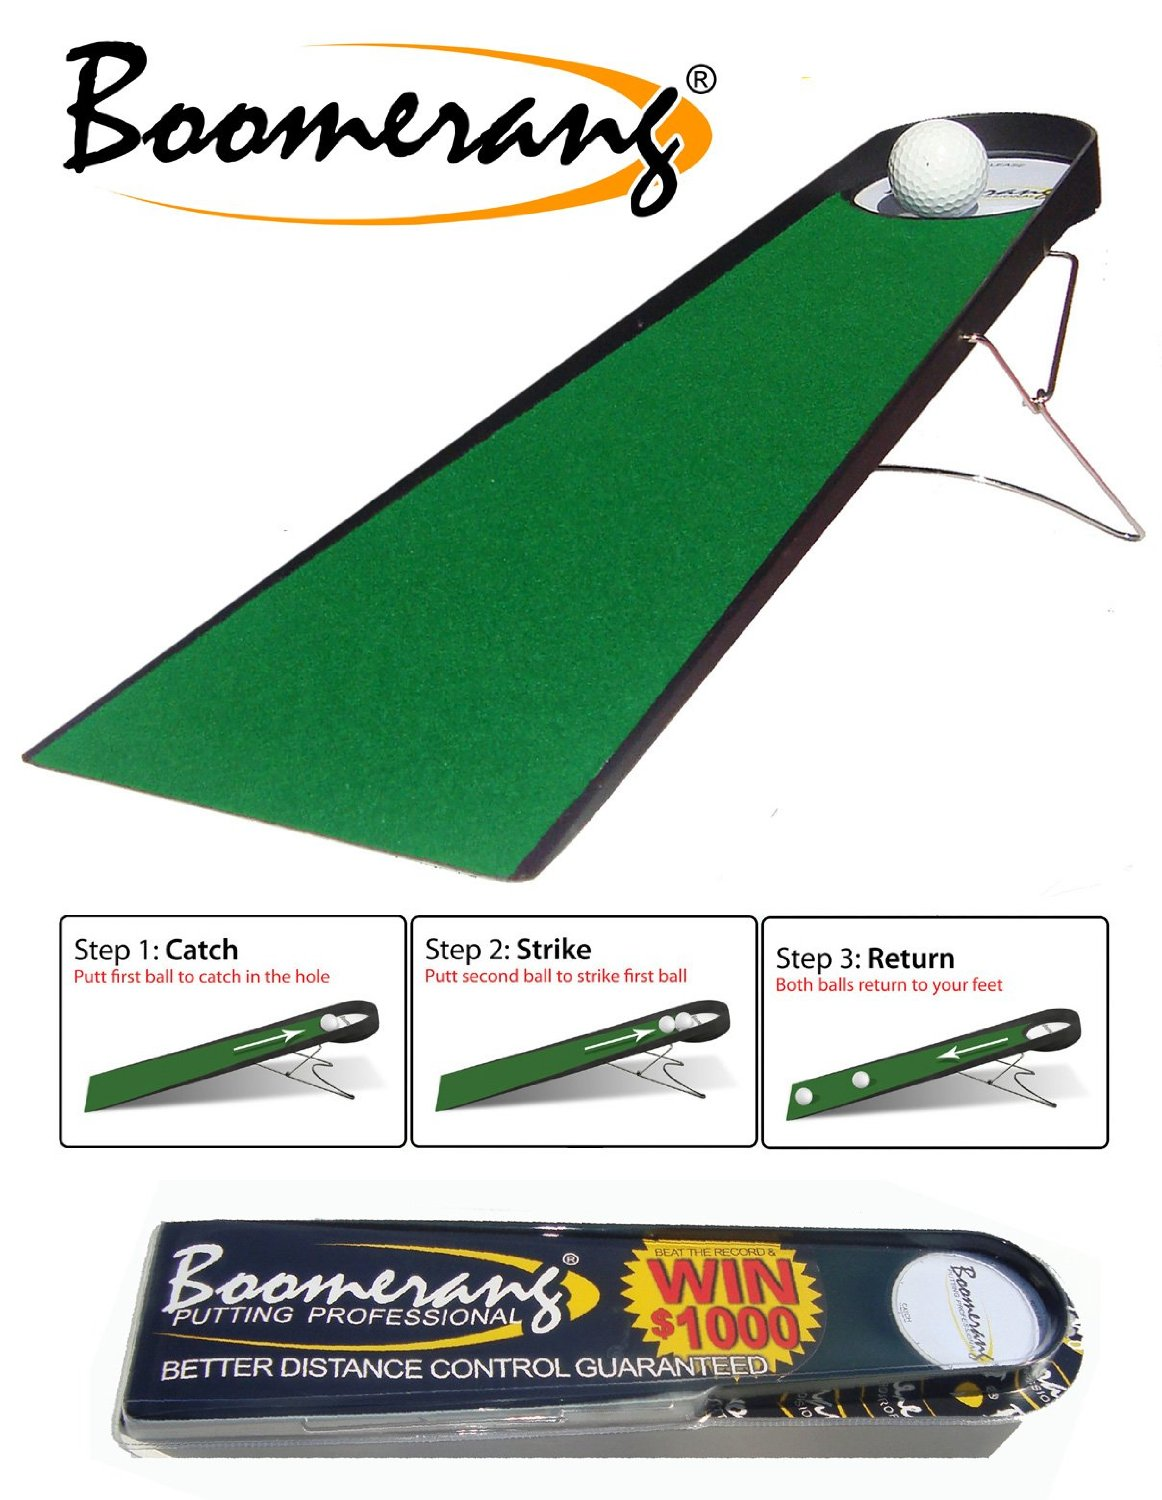 Boomerang Putting Pro Indoor Golf Putting Aids